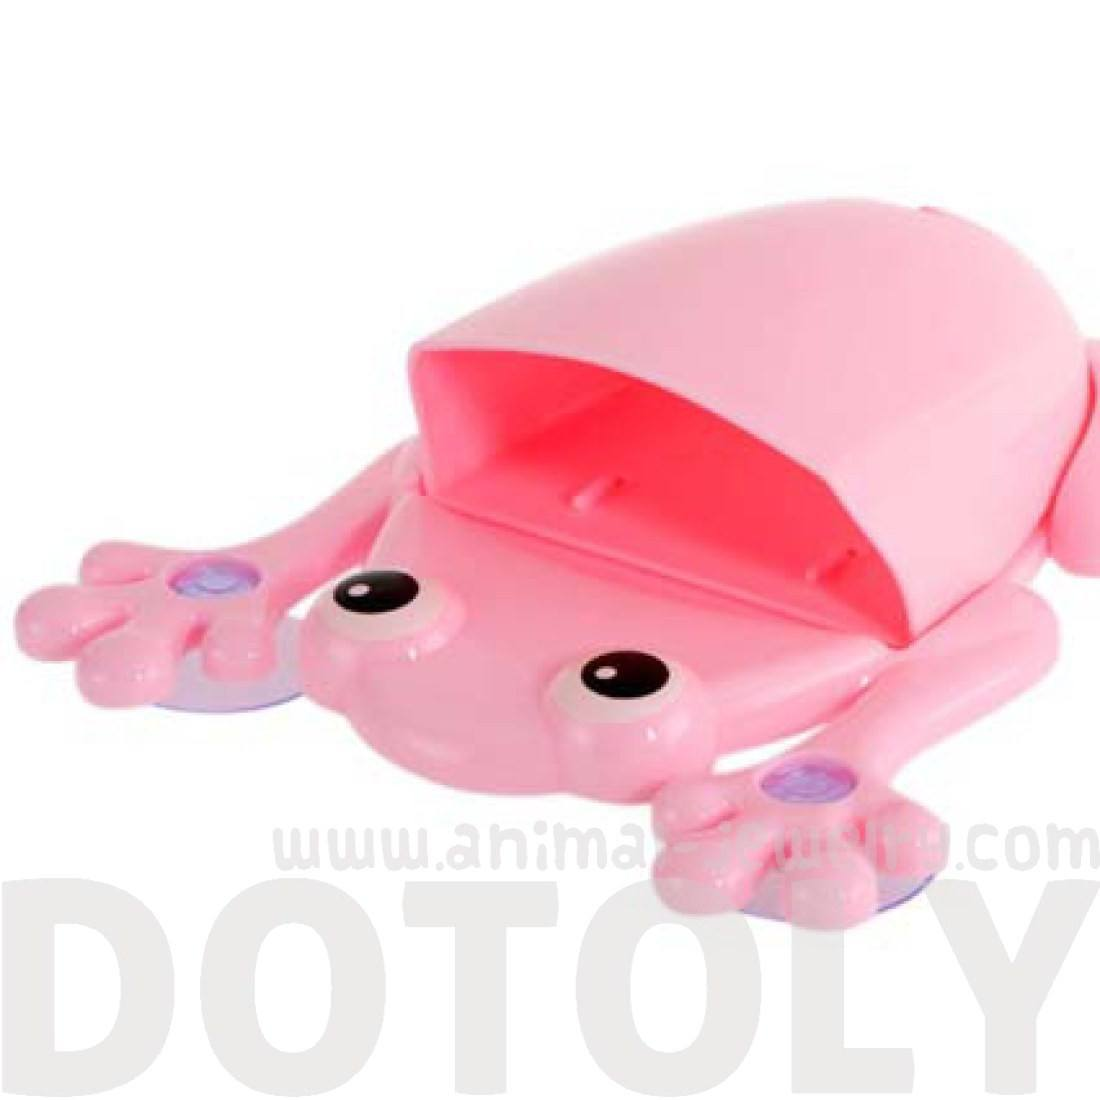 Cute Frog Shaped Toothbrush Holder Make Up Bathroom Organizer in Pink